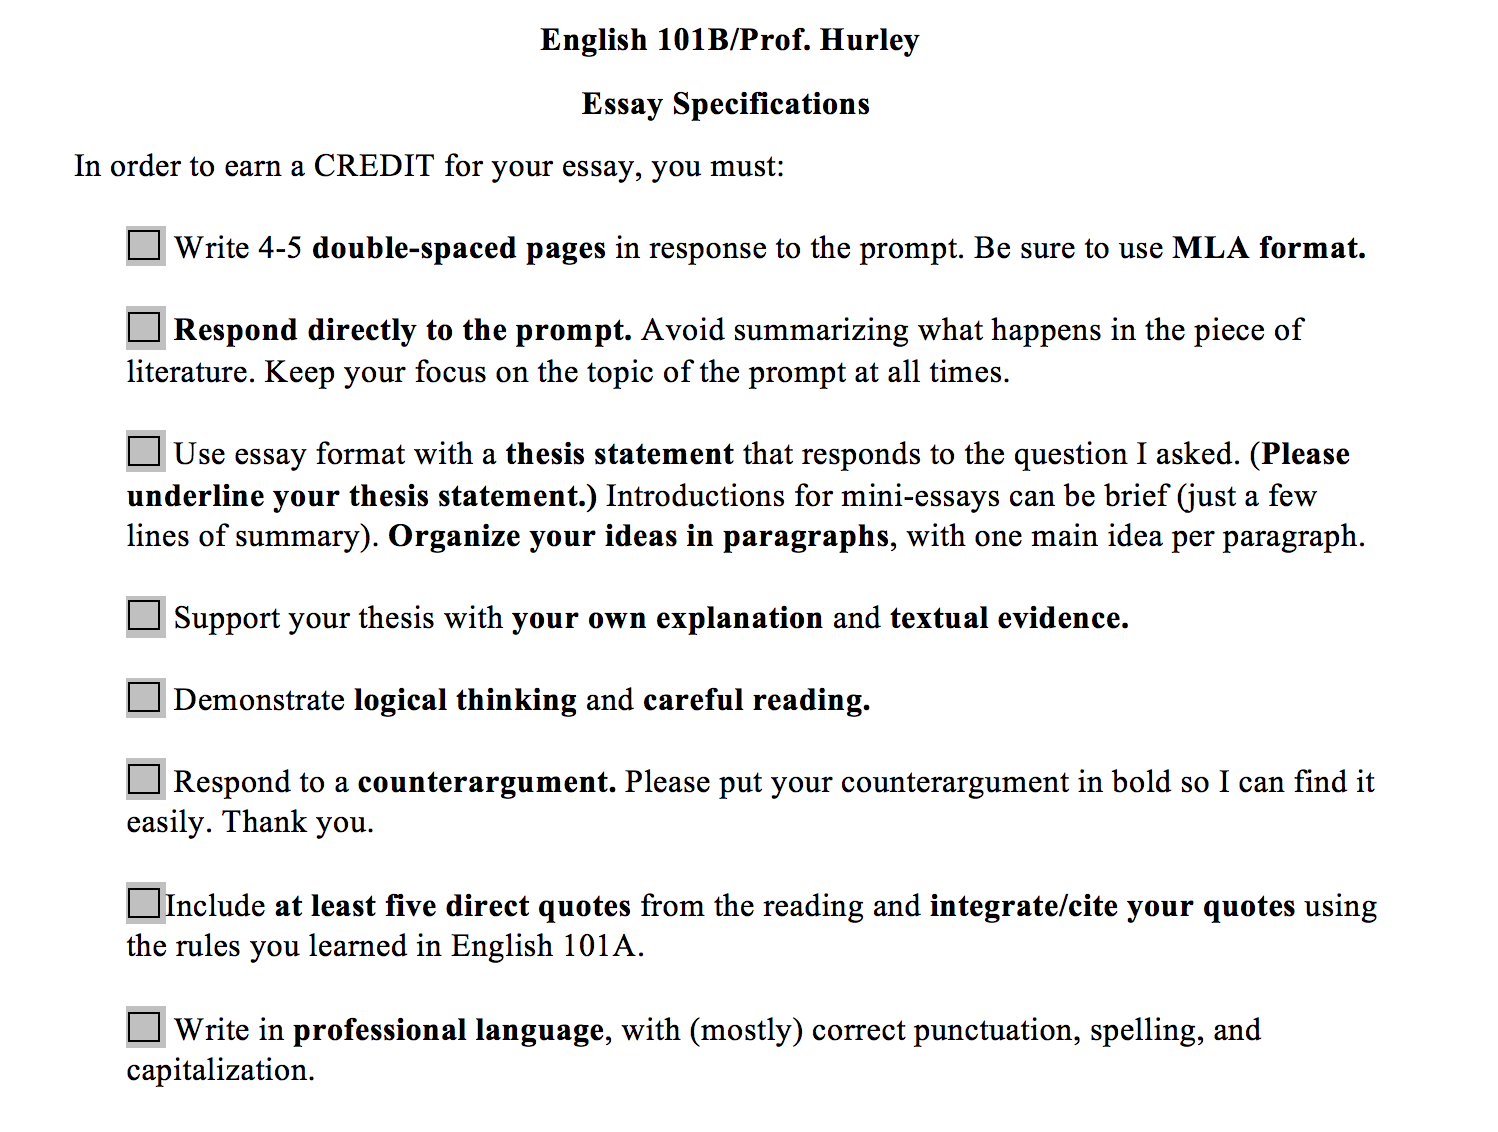 Thesis Examples In Essays  Essay Examples For High School Students also Position Paper Essay Vagueness The Surprising Thing We Might Need More Of In  Essay On High School